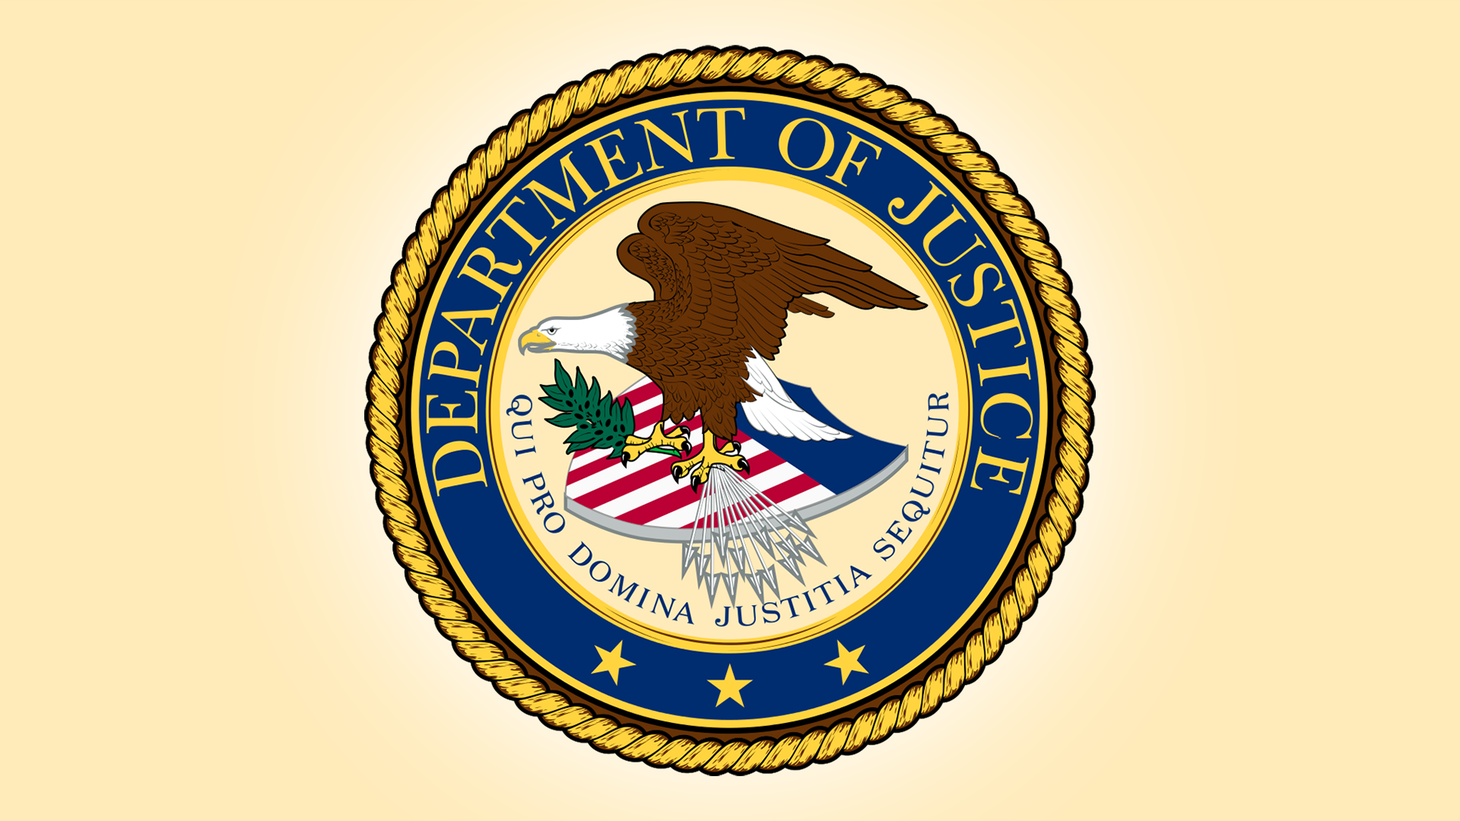 Seal of the U.S. Department of Justice.